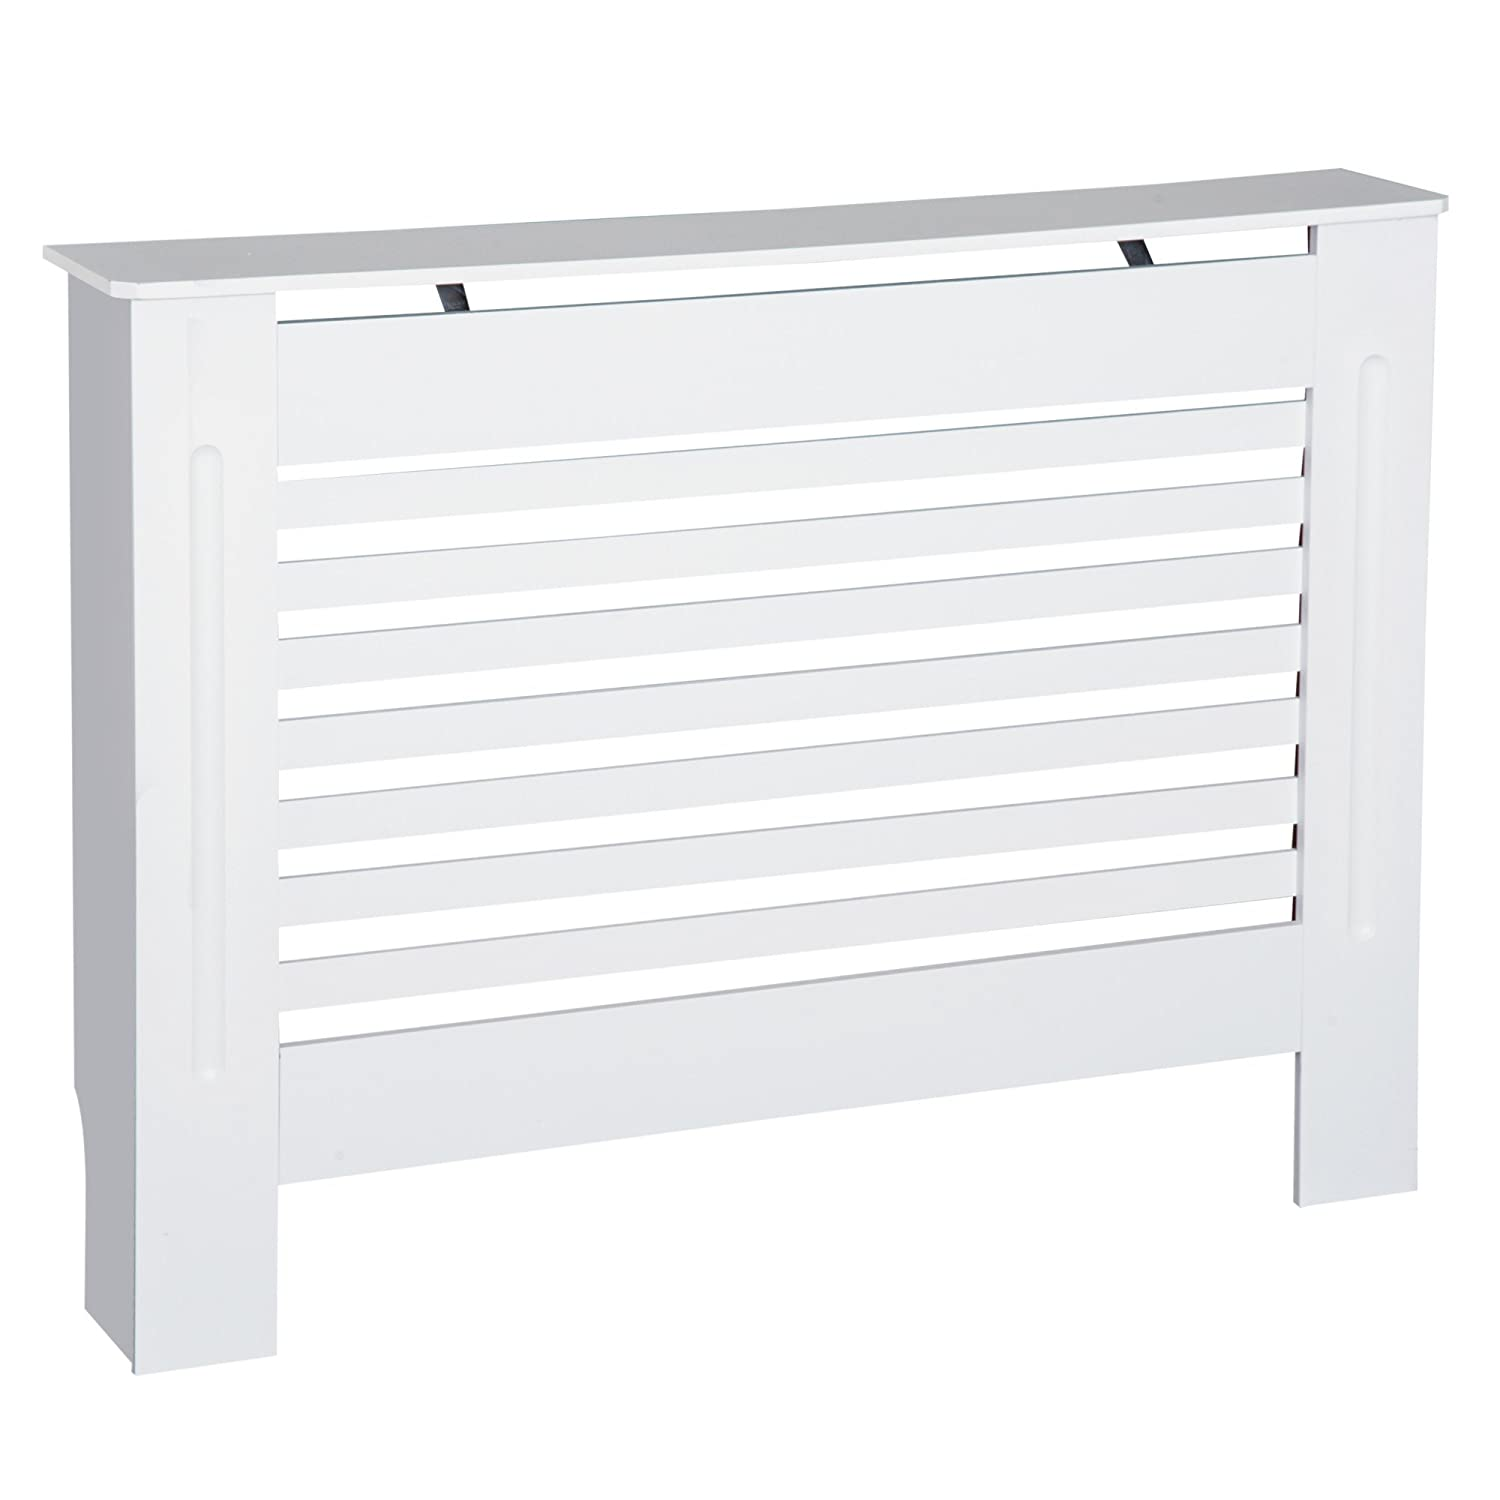 HOMCOM MDF Radiator Cover Wooden Cabinet Shelving Home Office Vertical Slattted Vent White 78L x 19W x 81H Sold by MHSTAR